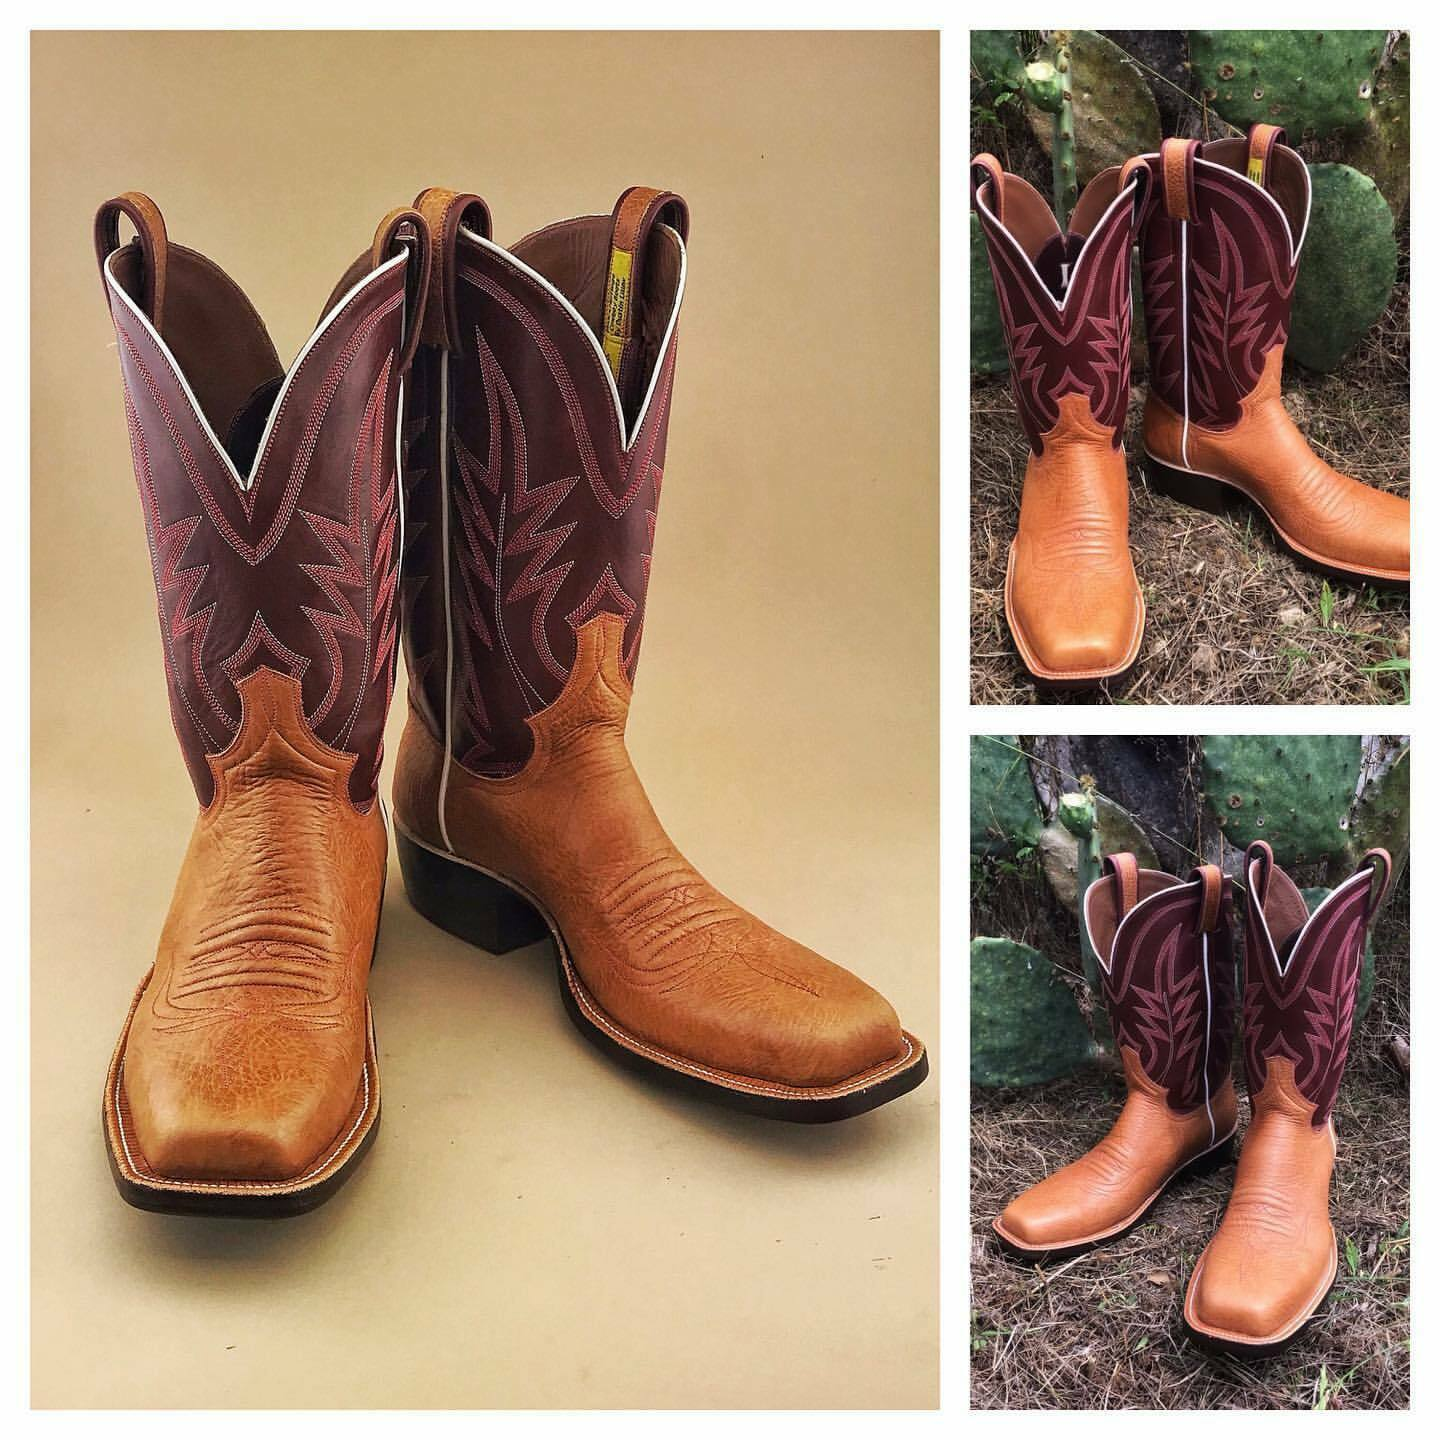 Primary image for Handmade Men's Maroon & Tan Leather Cowboy Mexican Western Hunter Jumper Boots